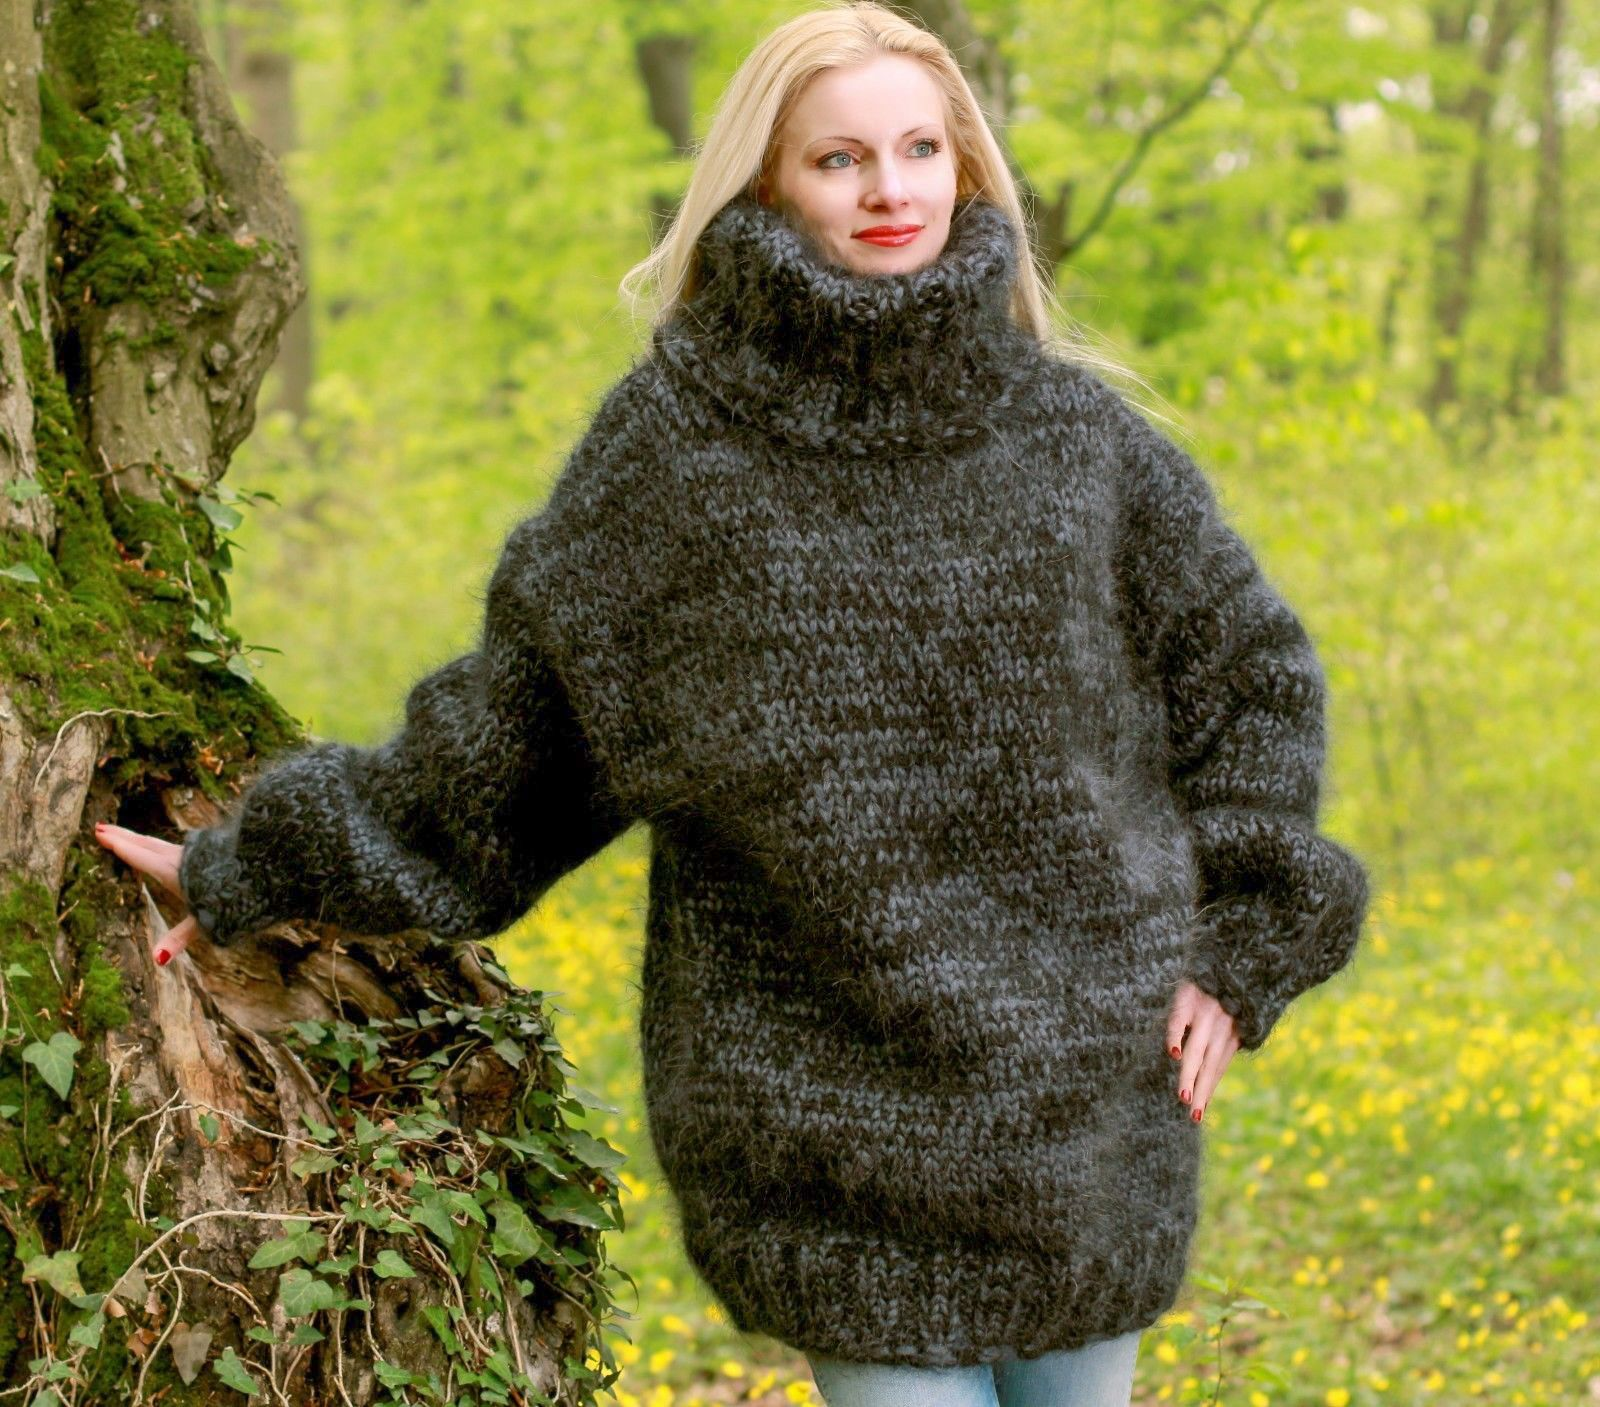 Pin by Eddie on BIG THICK BULKY Turtleneck sweaters | Pinterest